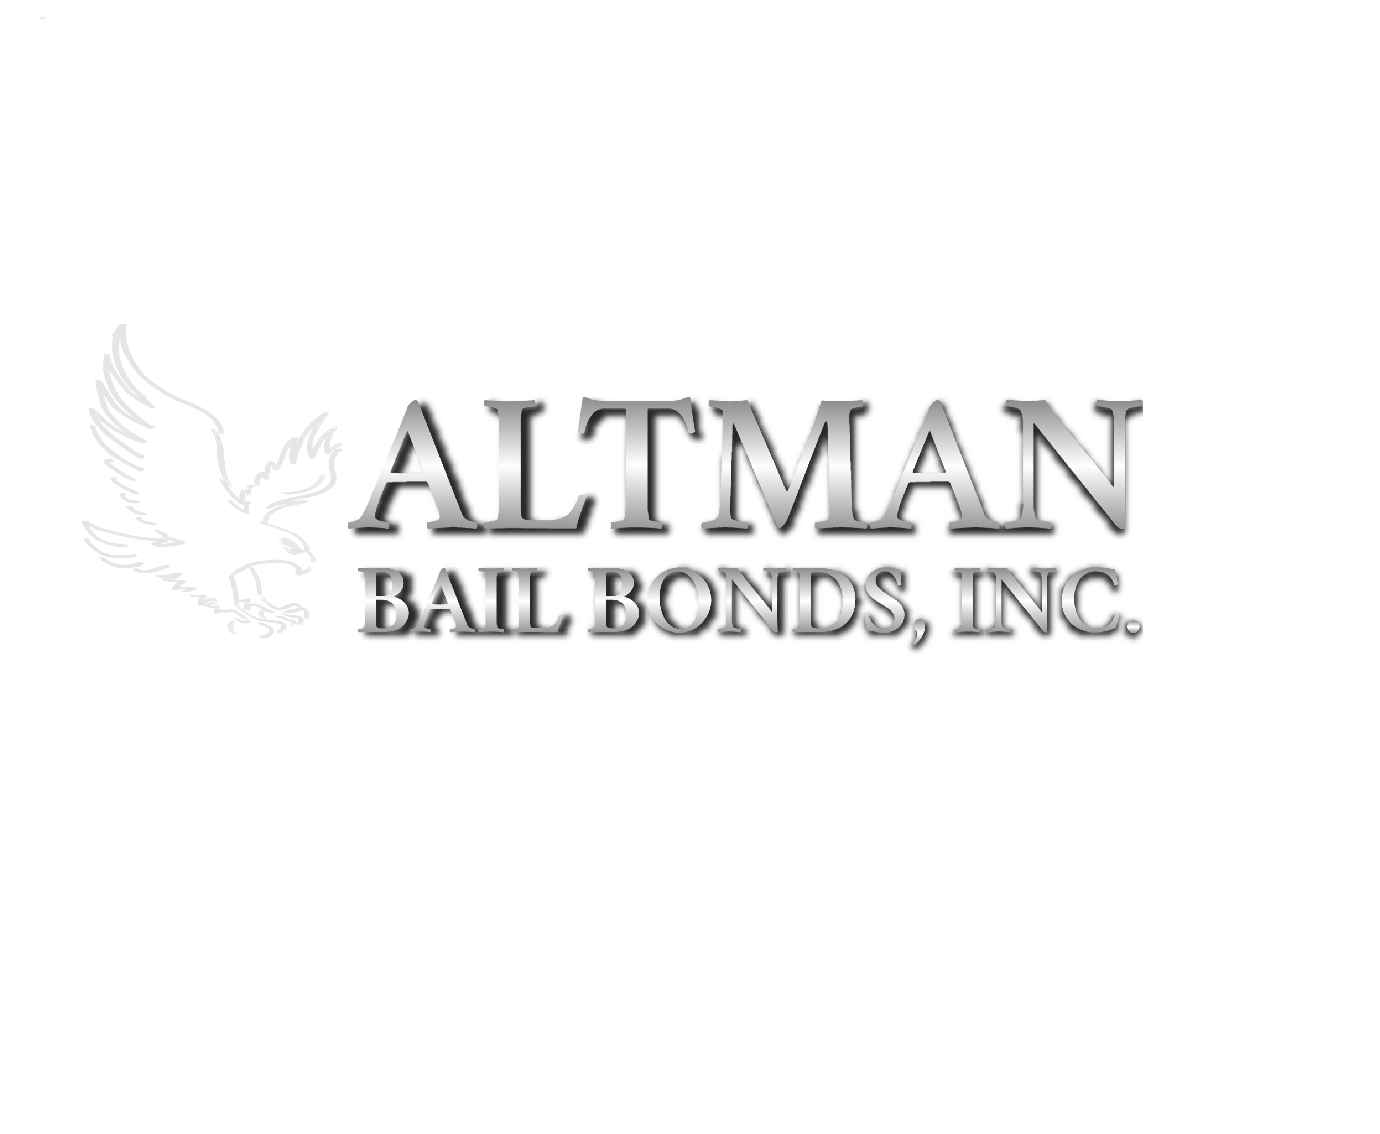 Altman Bail Bonds Inc.